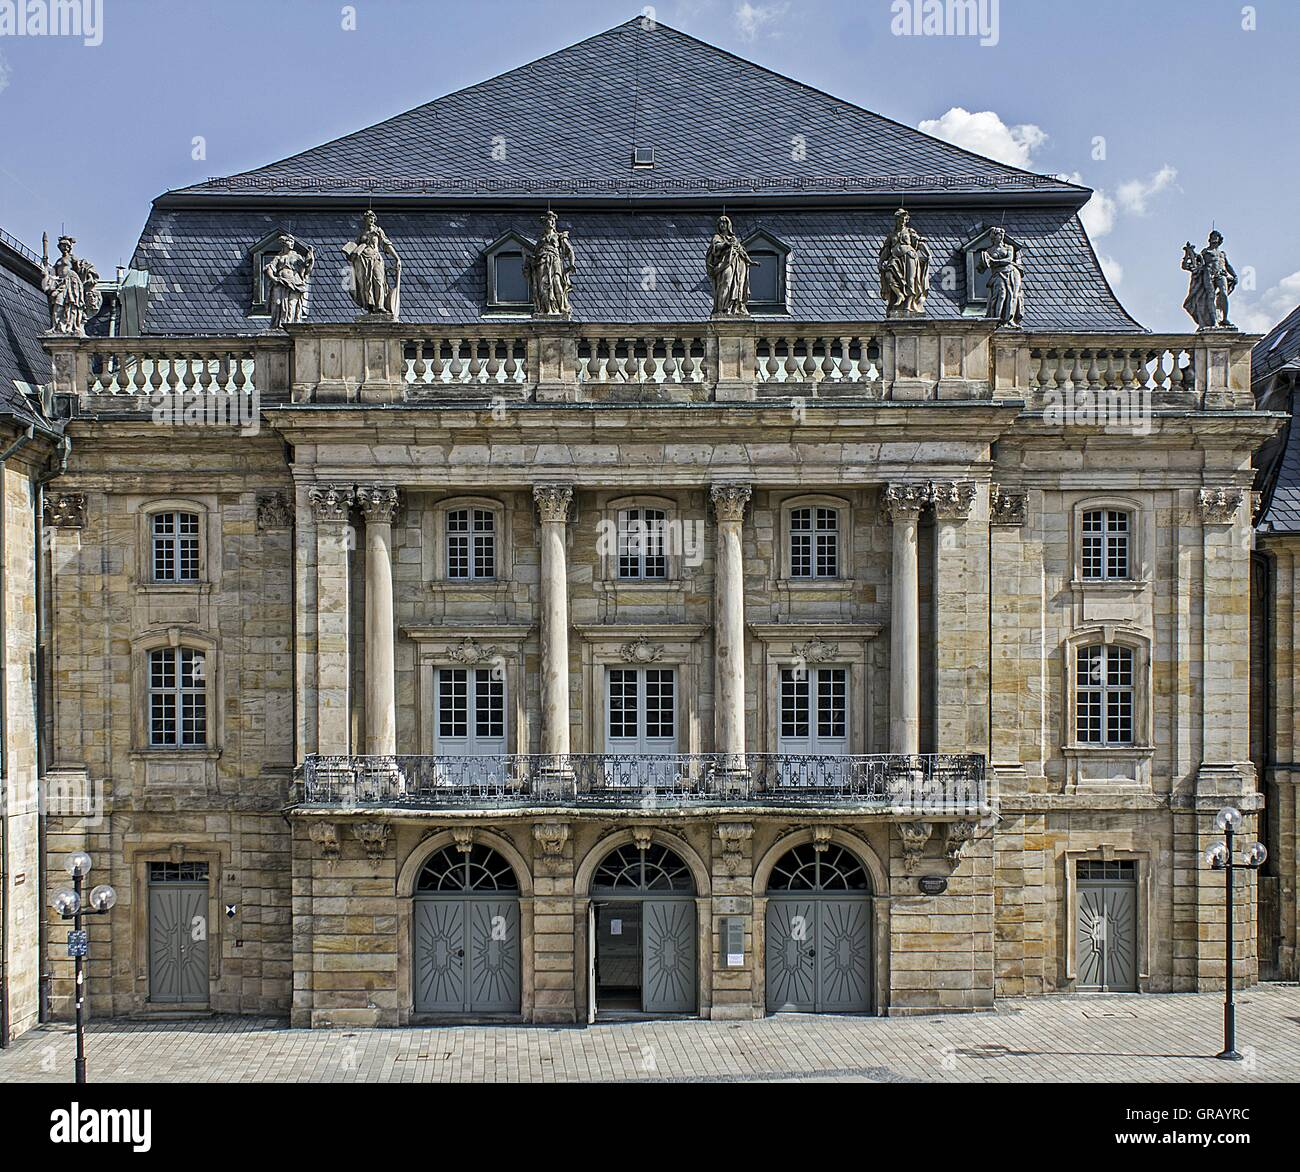 Margrave S Opera House In Bayreuth, A Unique Monument Of Baroque Theater Culture - Stock Image